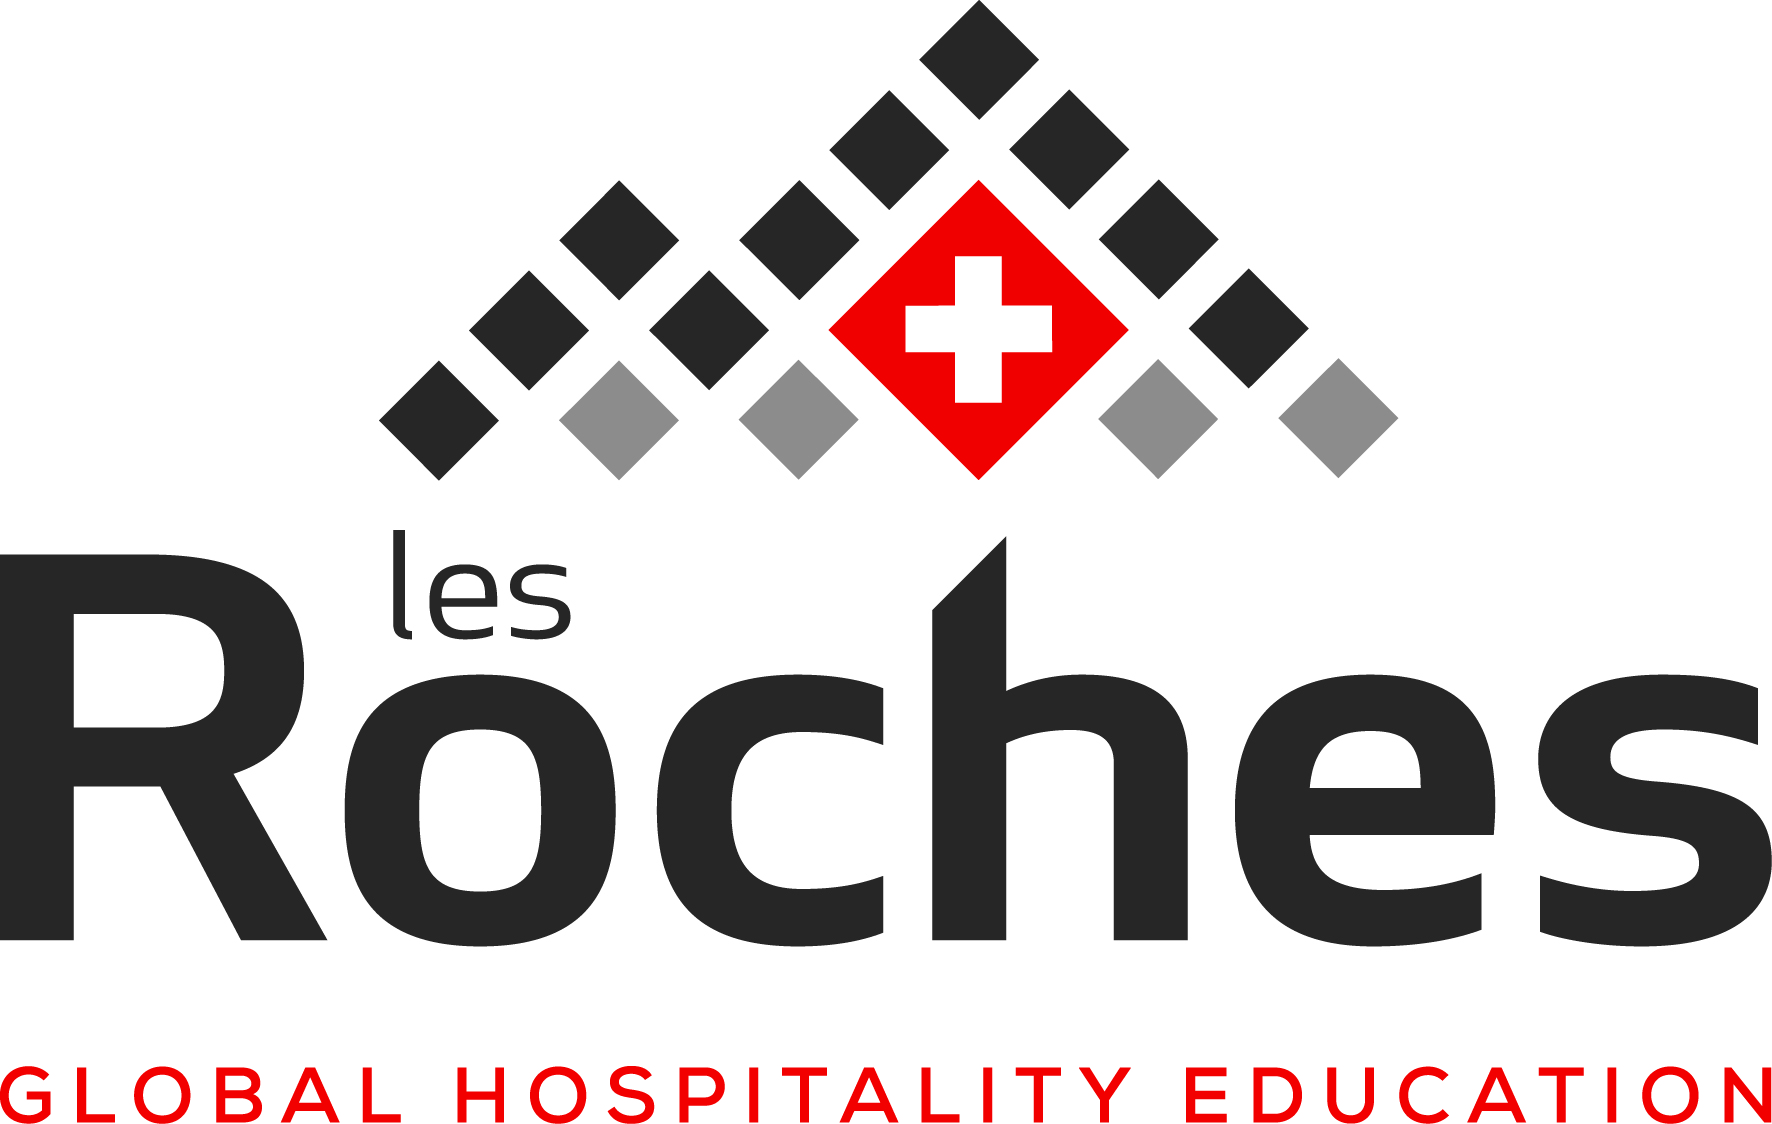 Les Roches Switzerland